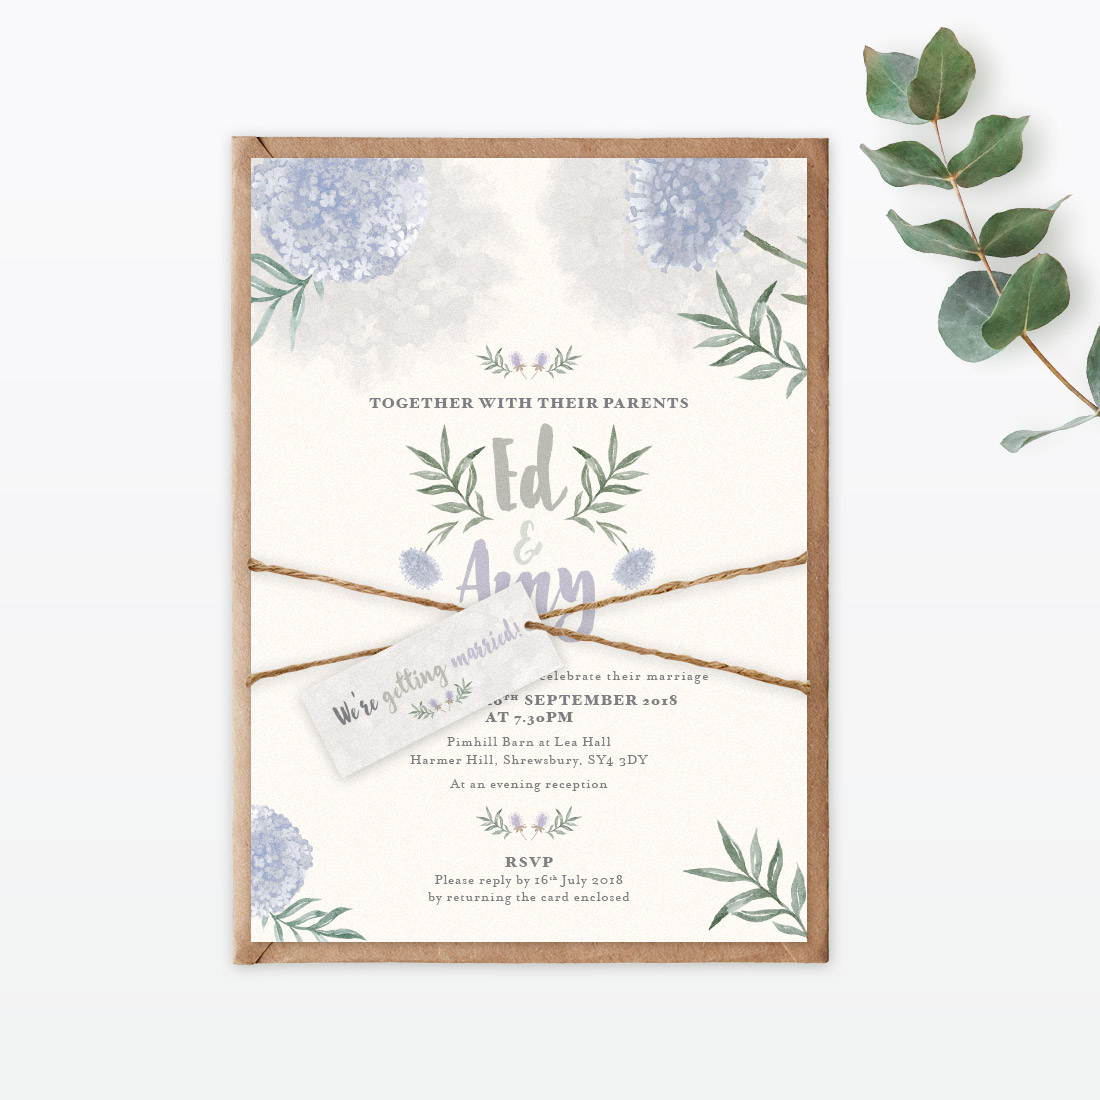 Love Invited wedding stationery budget £500-£600